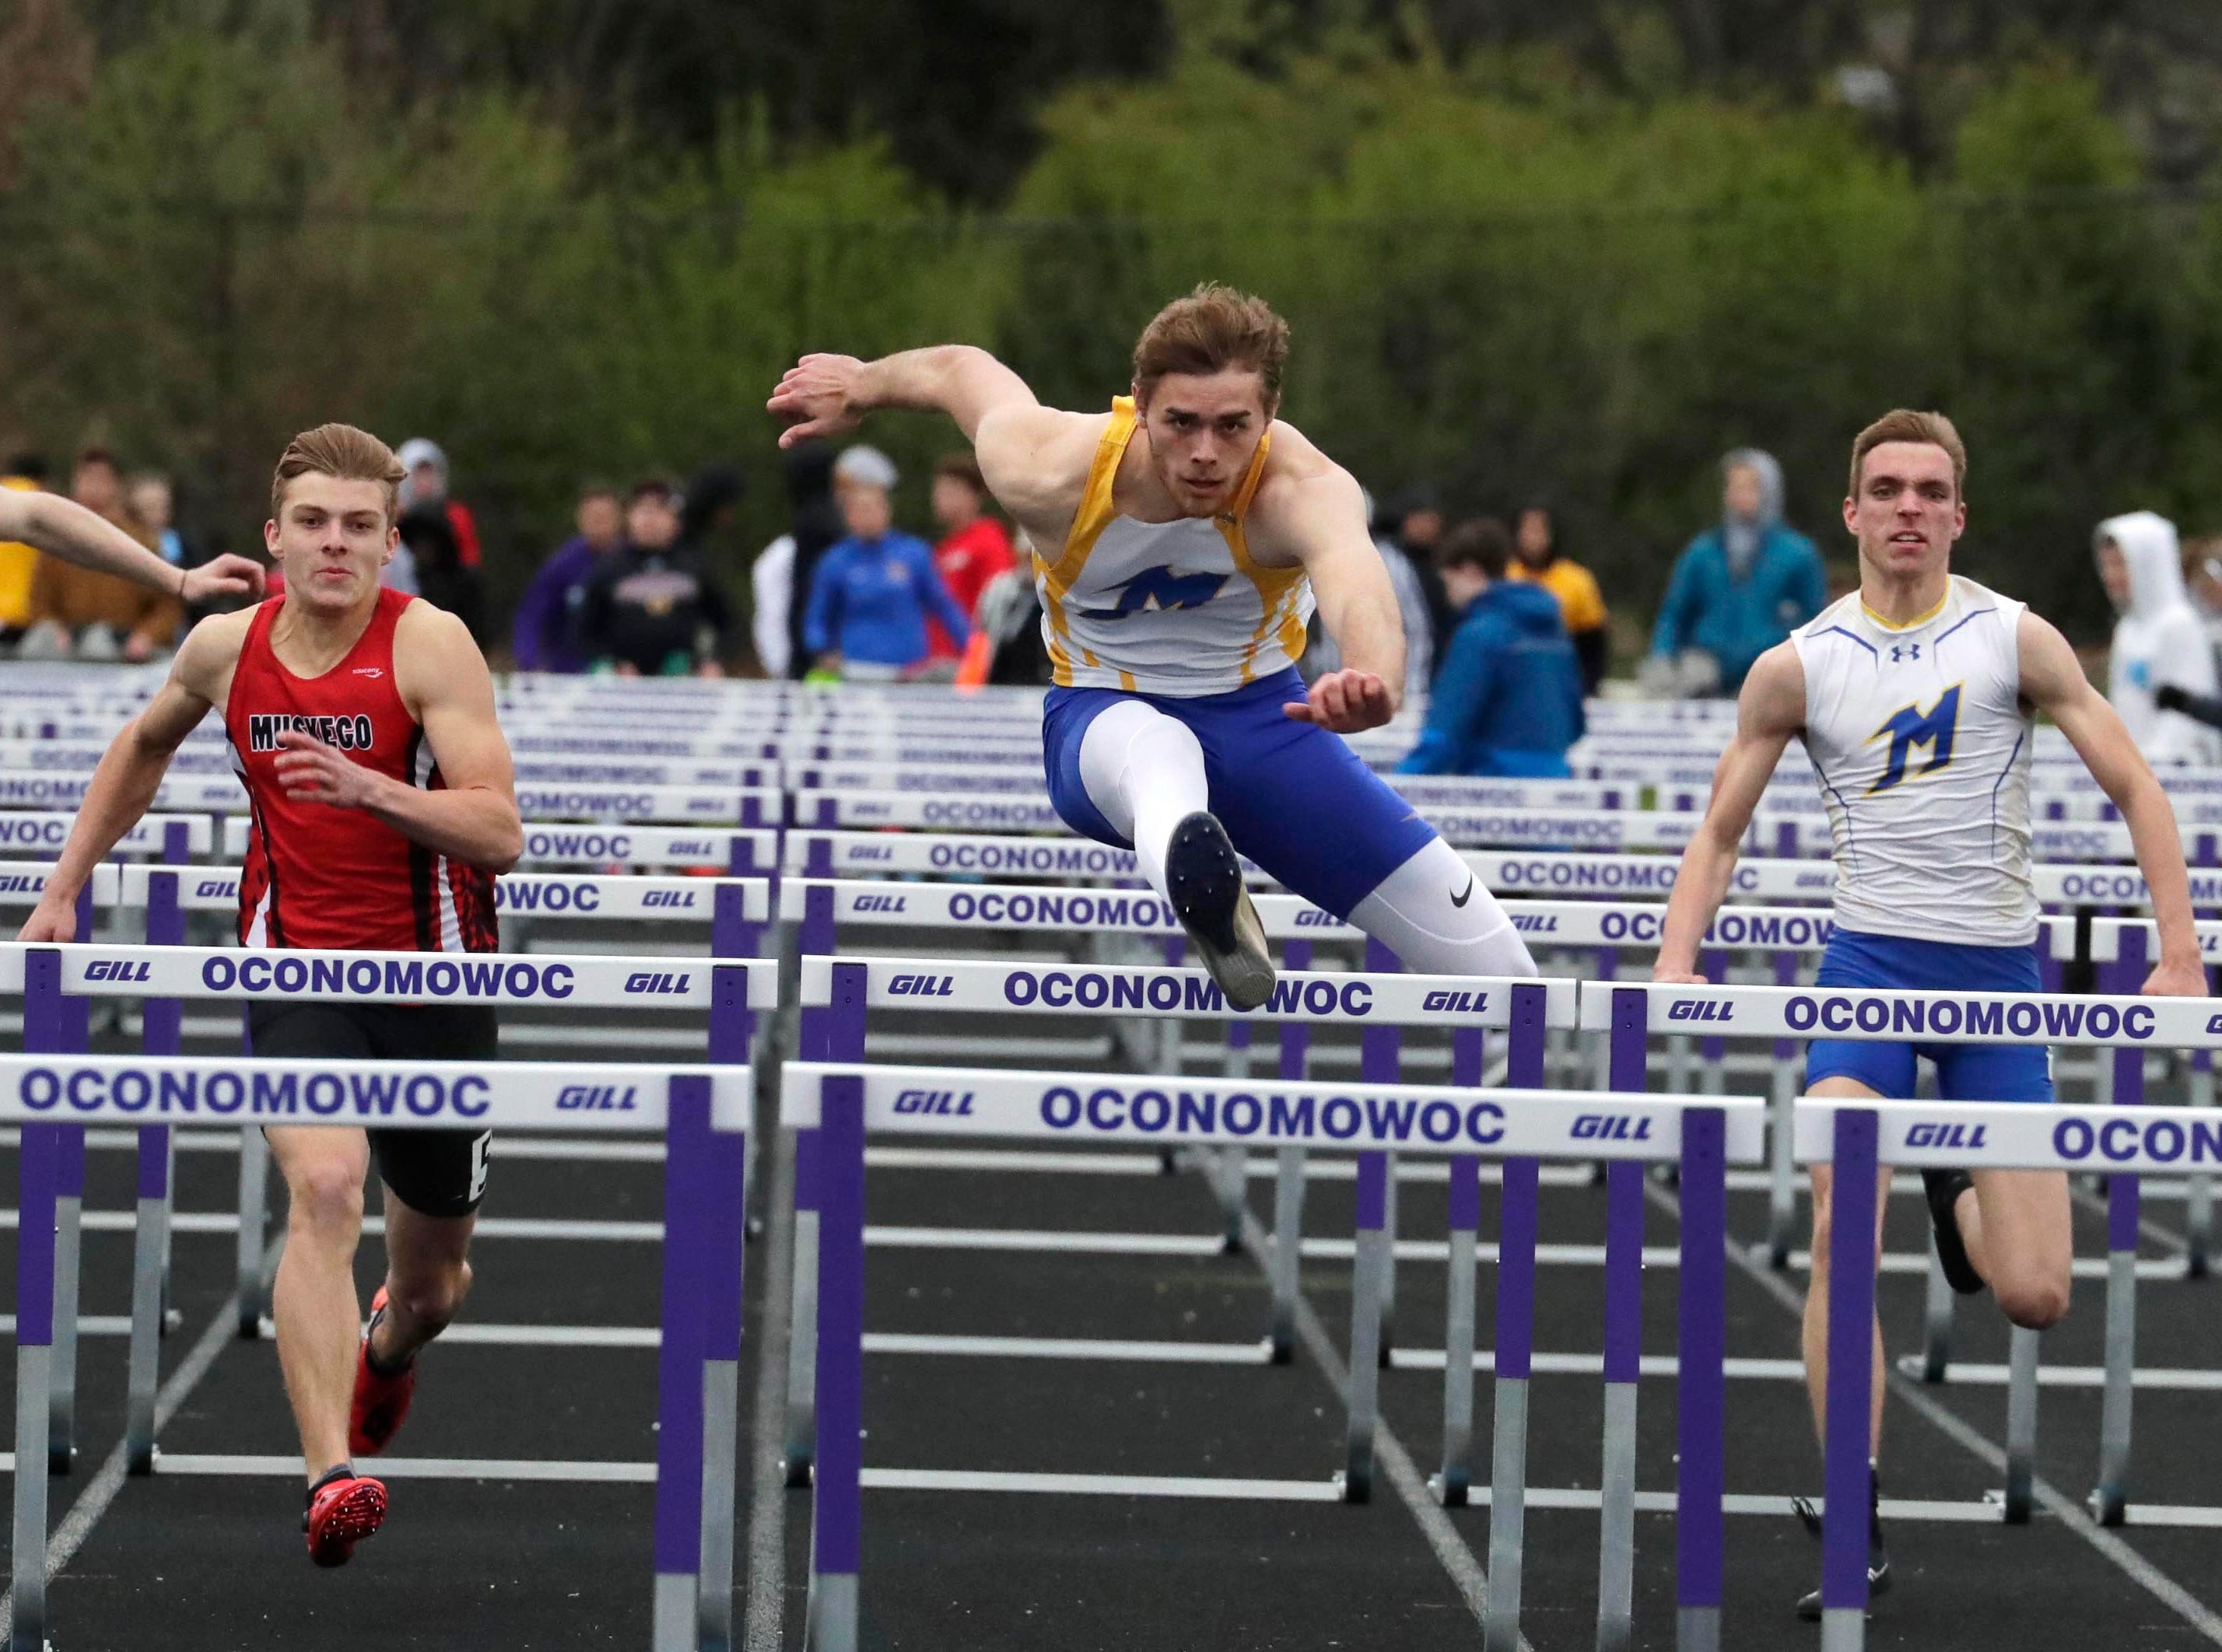 Wesley Juszczak of Mukwonago wins the Boys 110-meter hurdles finals with a time of 15.34 seconds beating Muskego's Spencer Reichart (15.73) during the Classic 8 Conference track meet in Oconomowoc, Thursday, May 9, 2019.